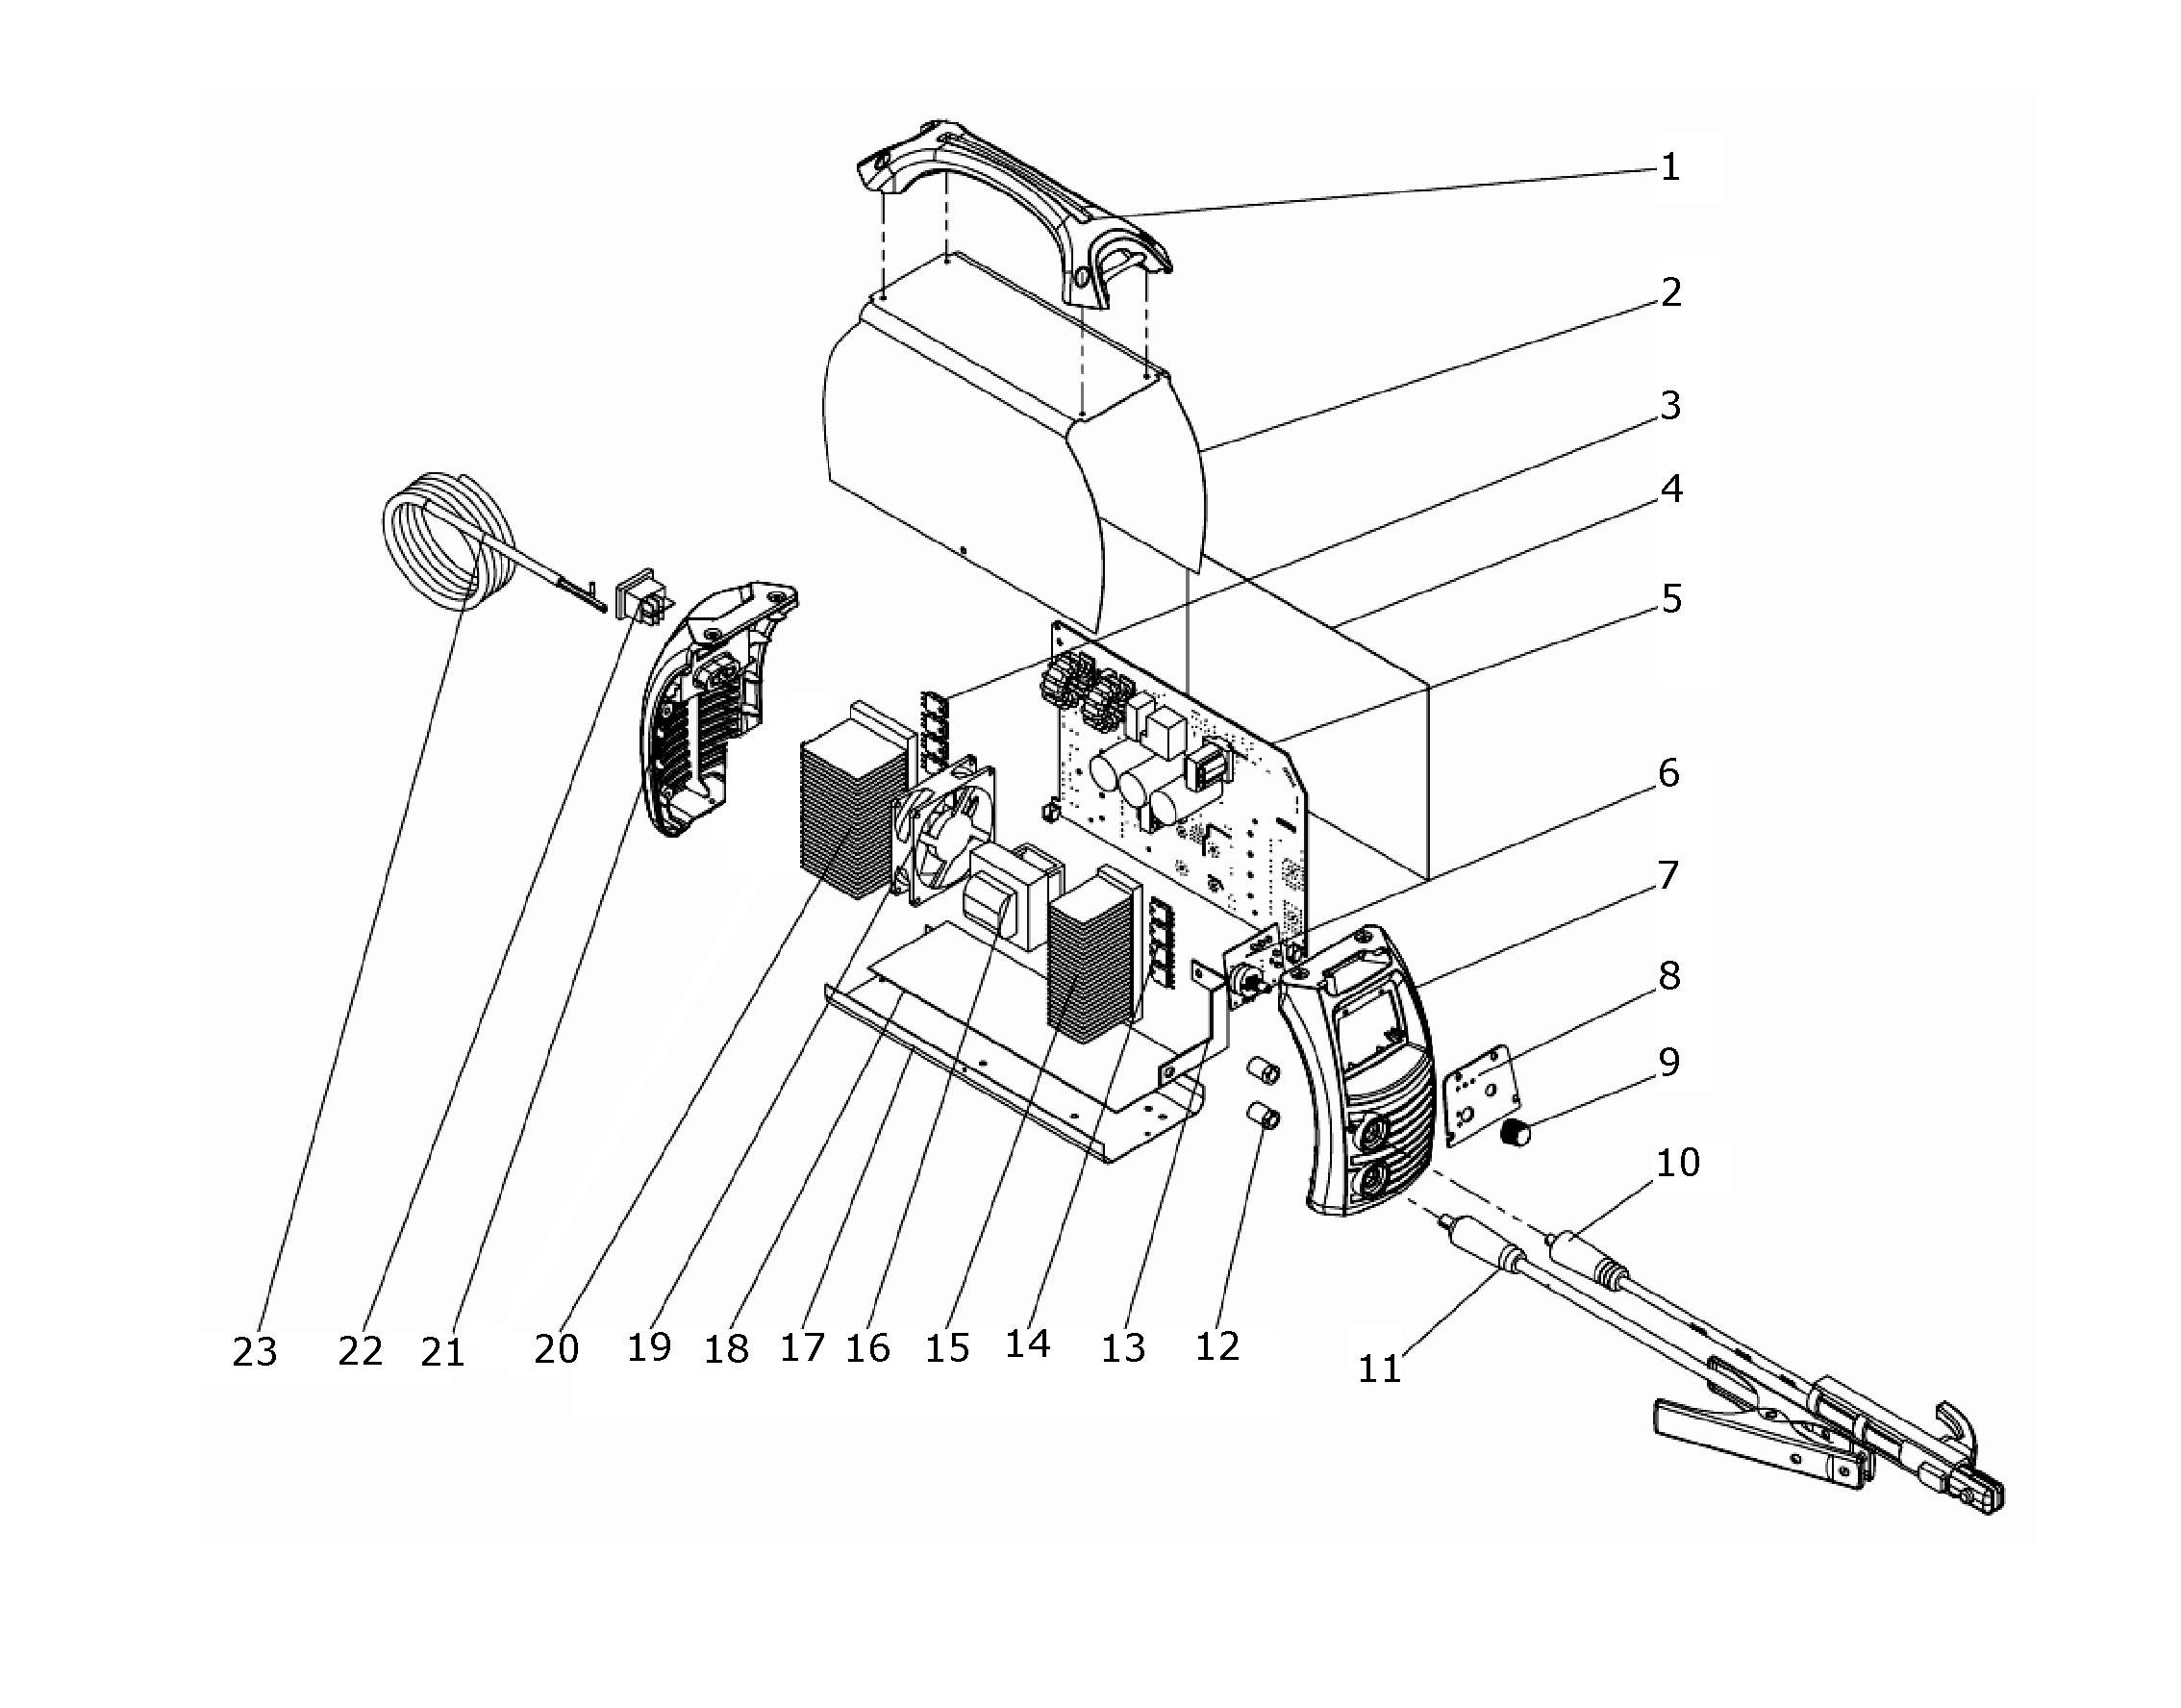 sip 05706 t183 inverter arc tig welder diagram